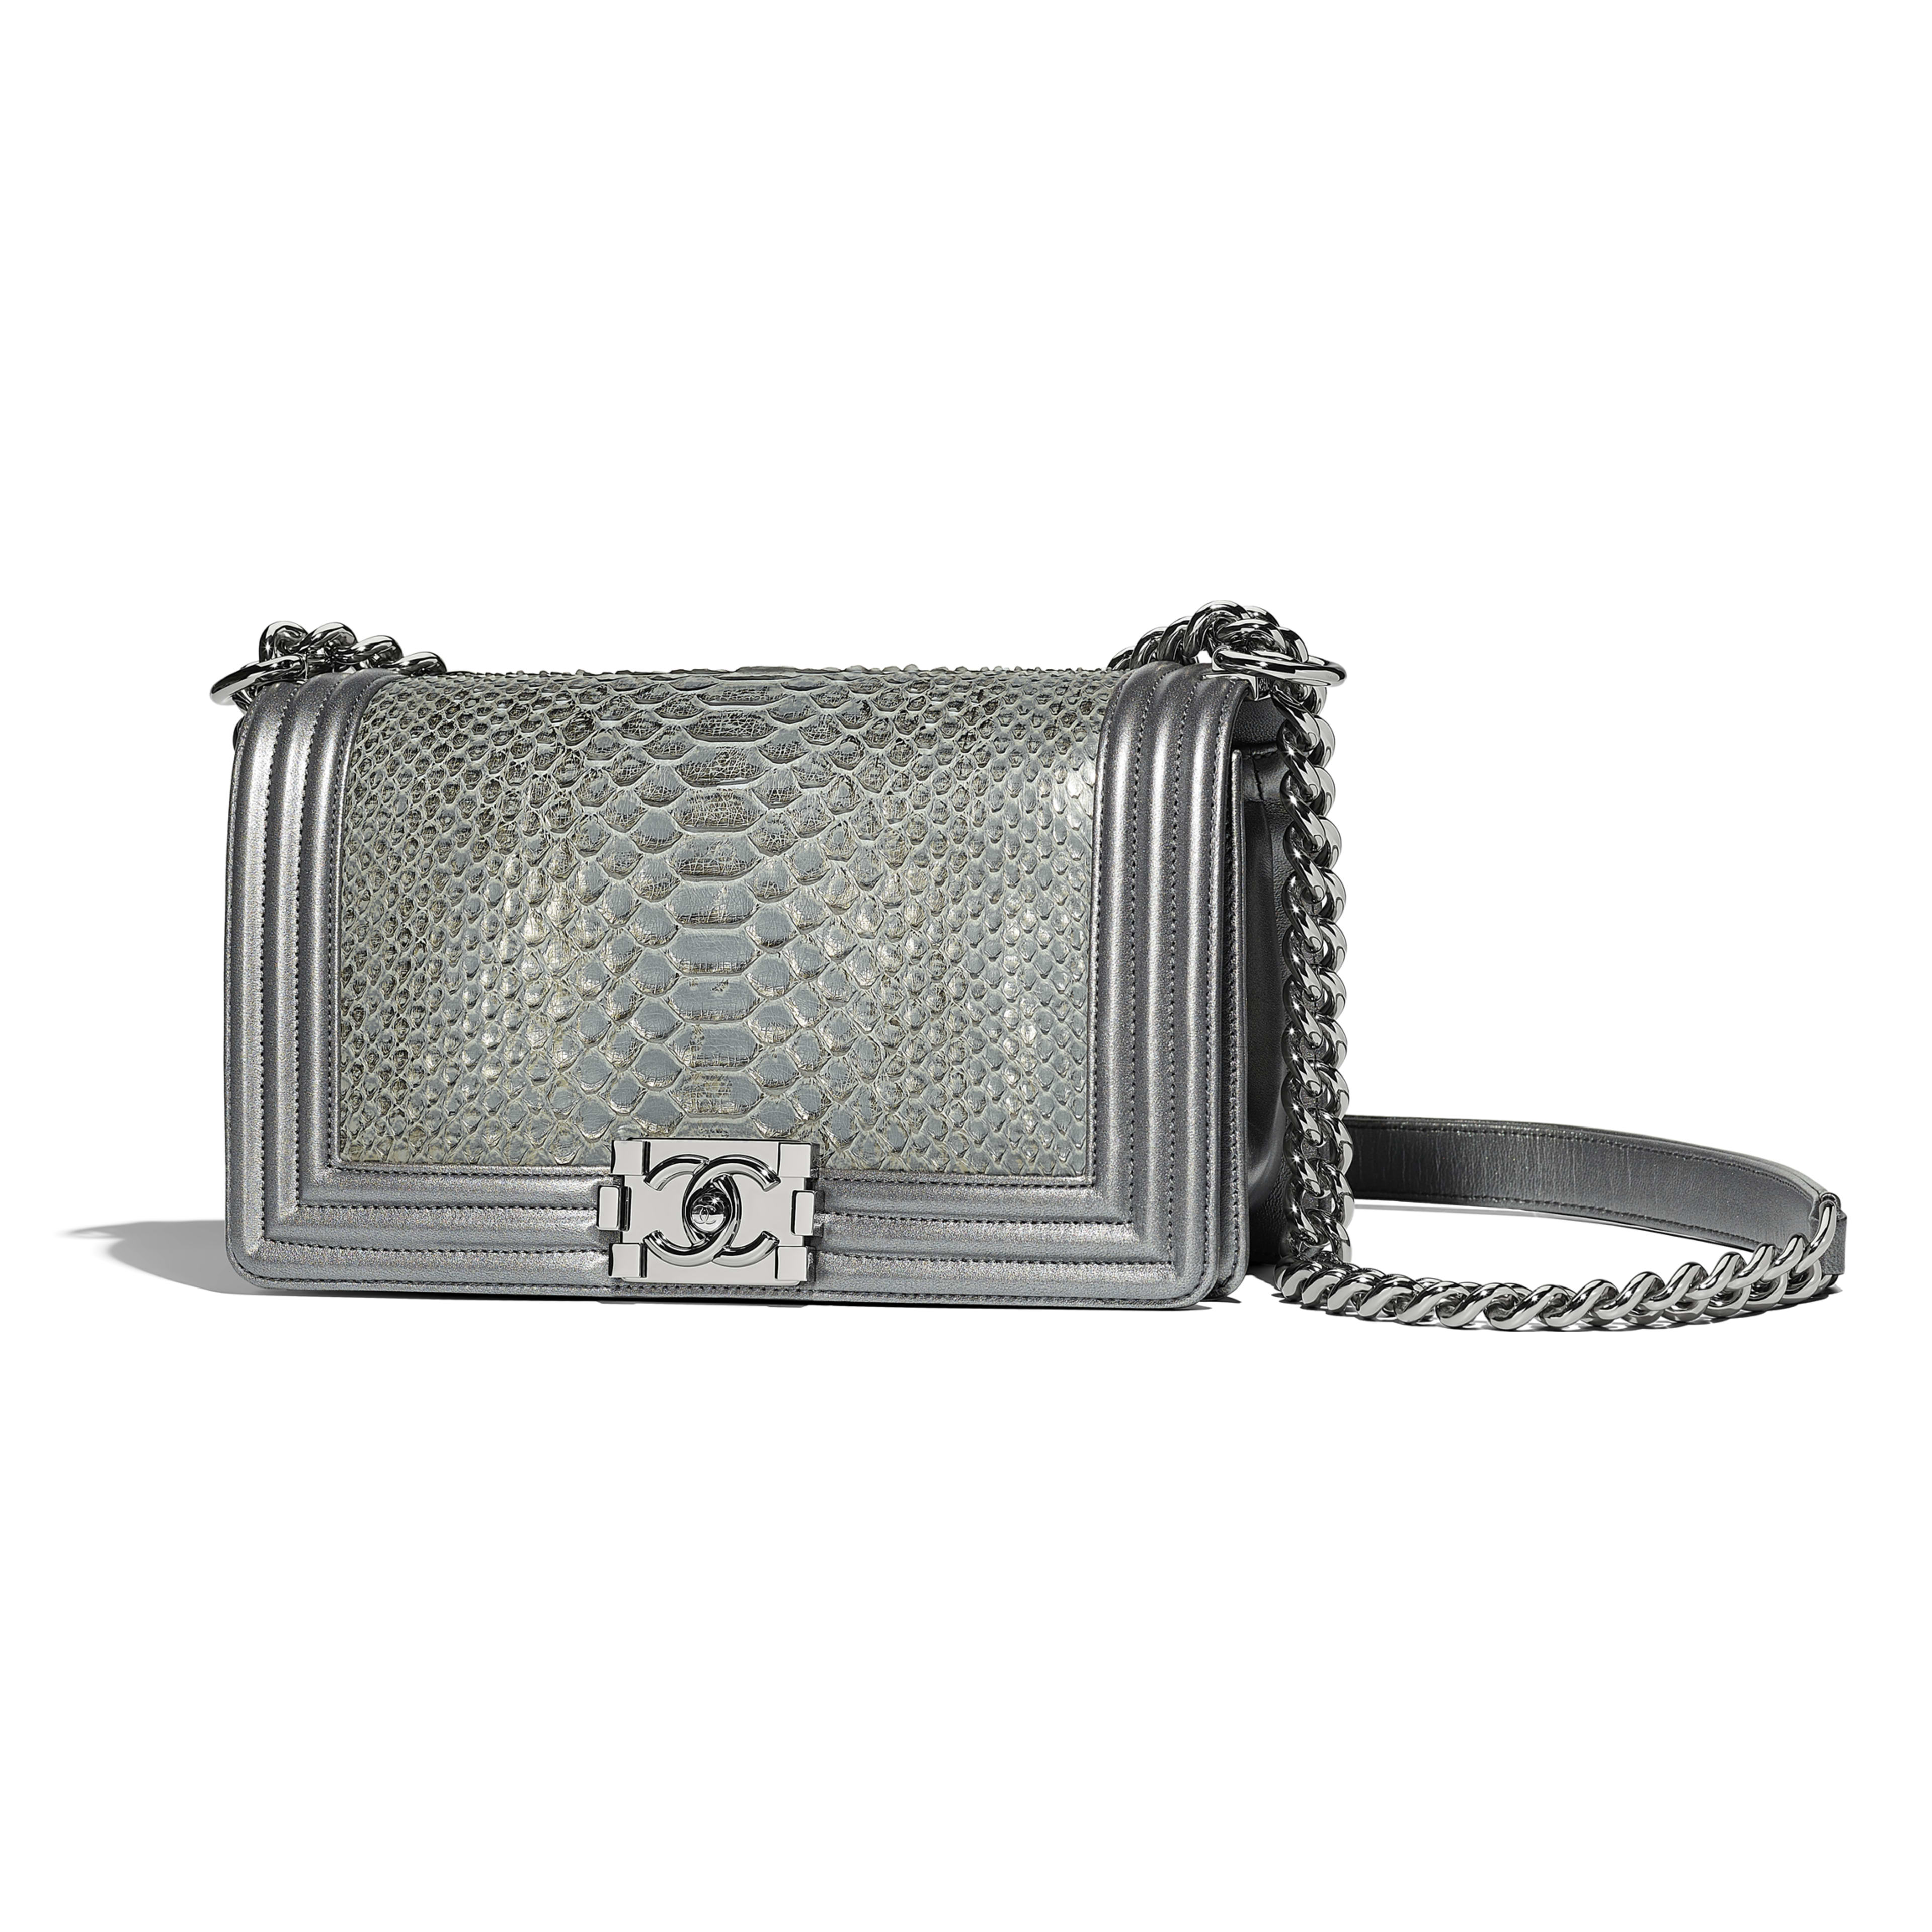 BOY CHANEL Handbag Python, Metallic Lambskin & Ruthenium-Finish Metal Silver -                                  view 1 - see full sized version